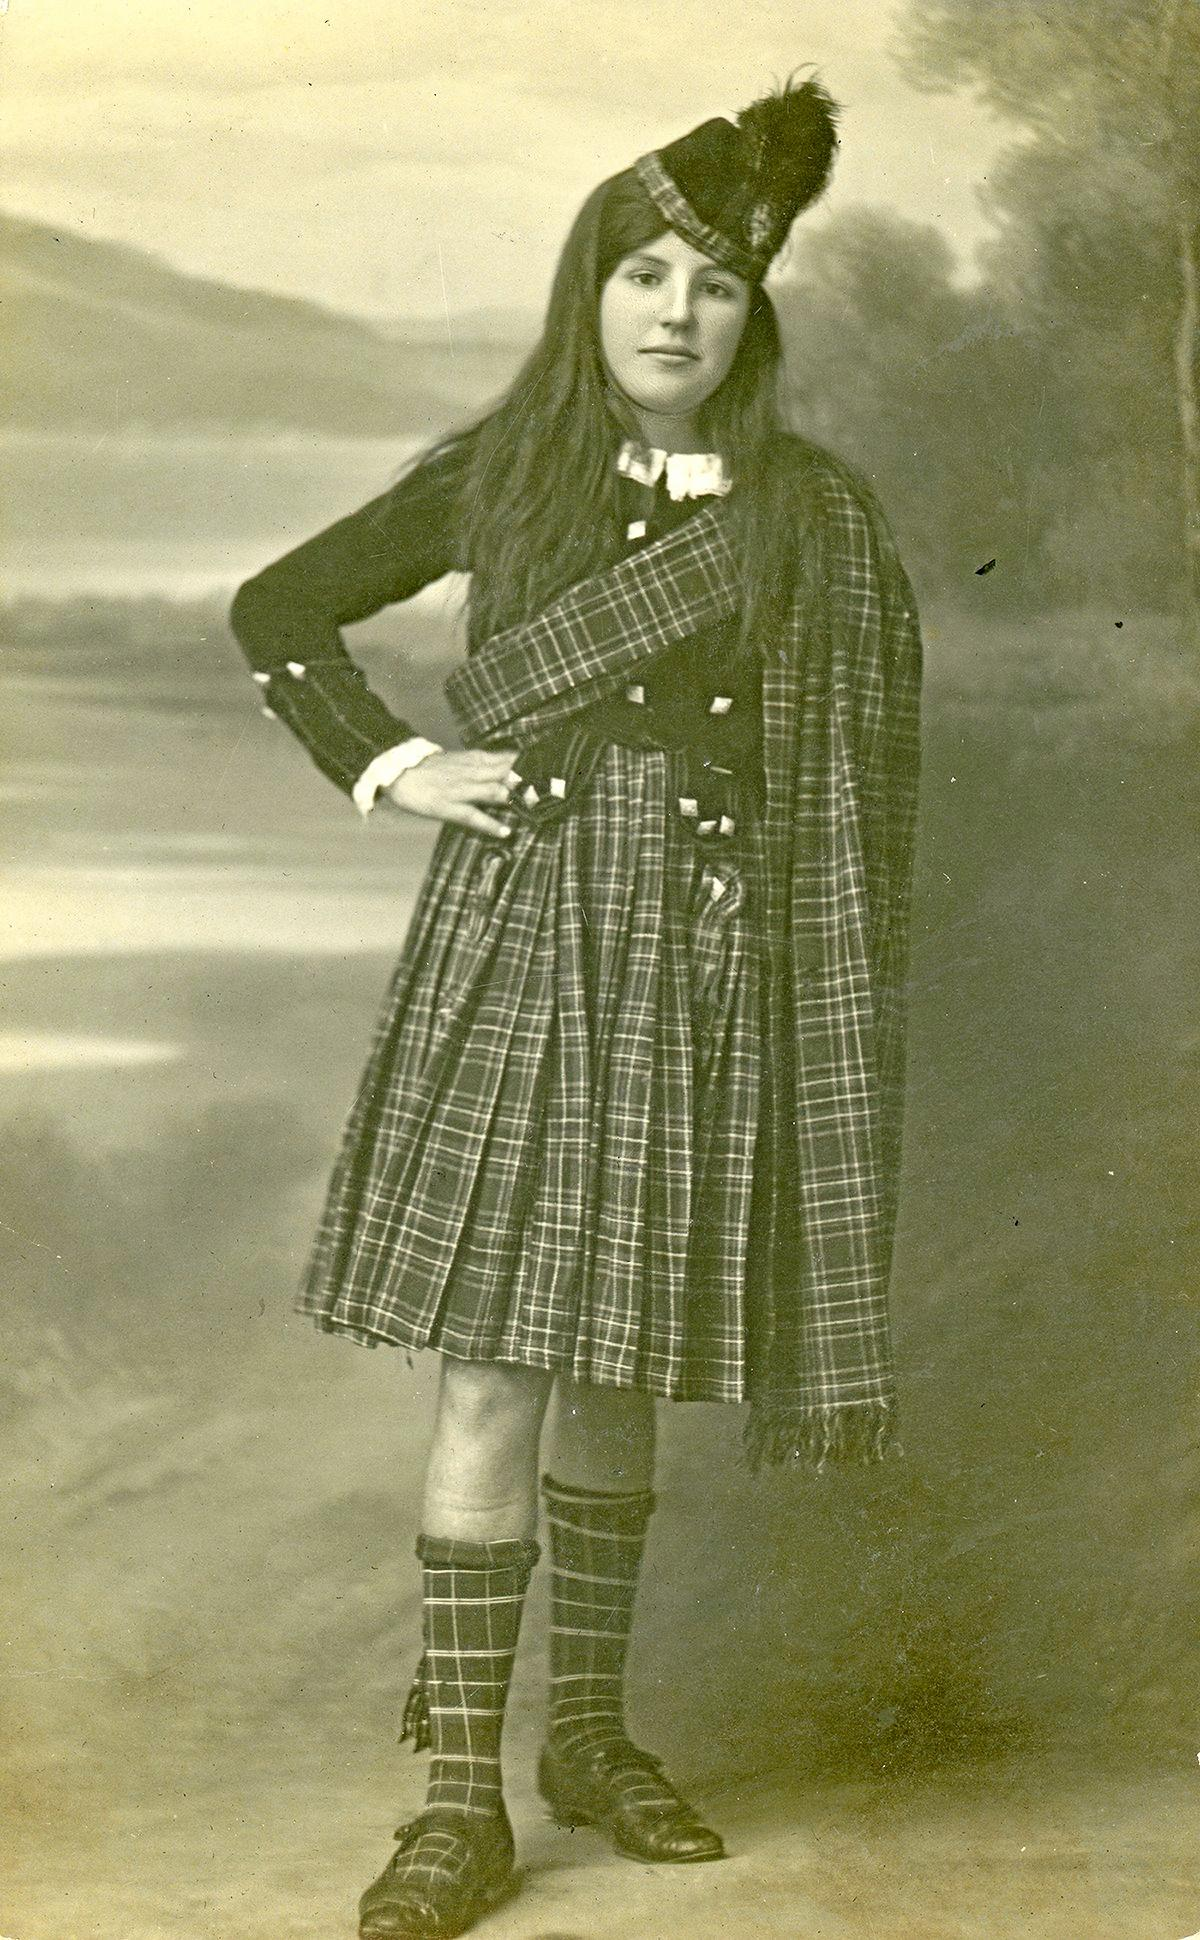 Ella in her winning Scottish costume at a Cudgera Fancy Dress Juvenile Ball in August 1920, aged 11. Photograph by Angus McNeil